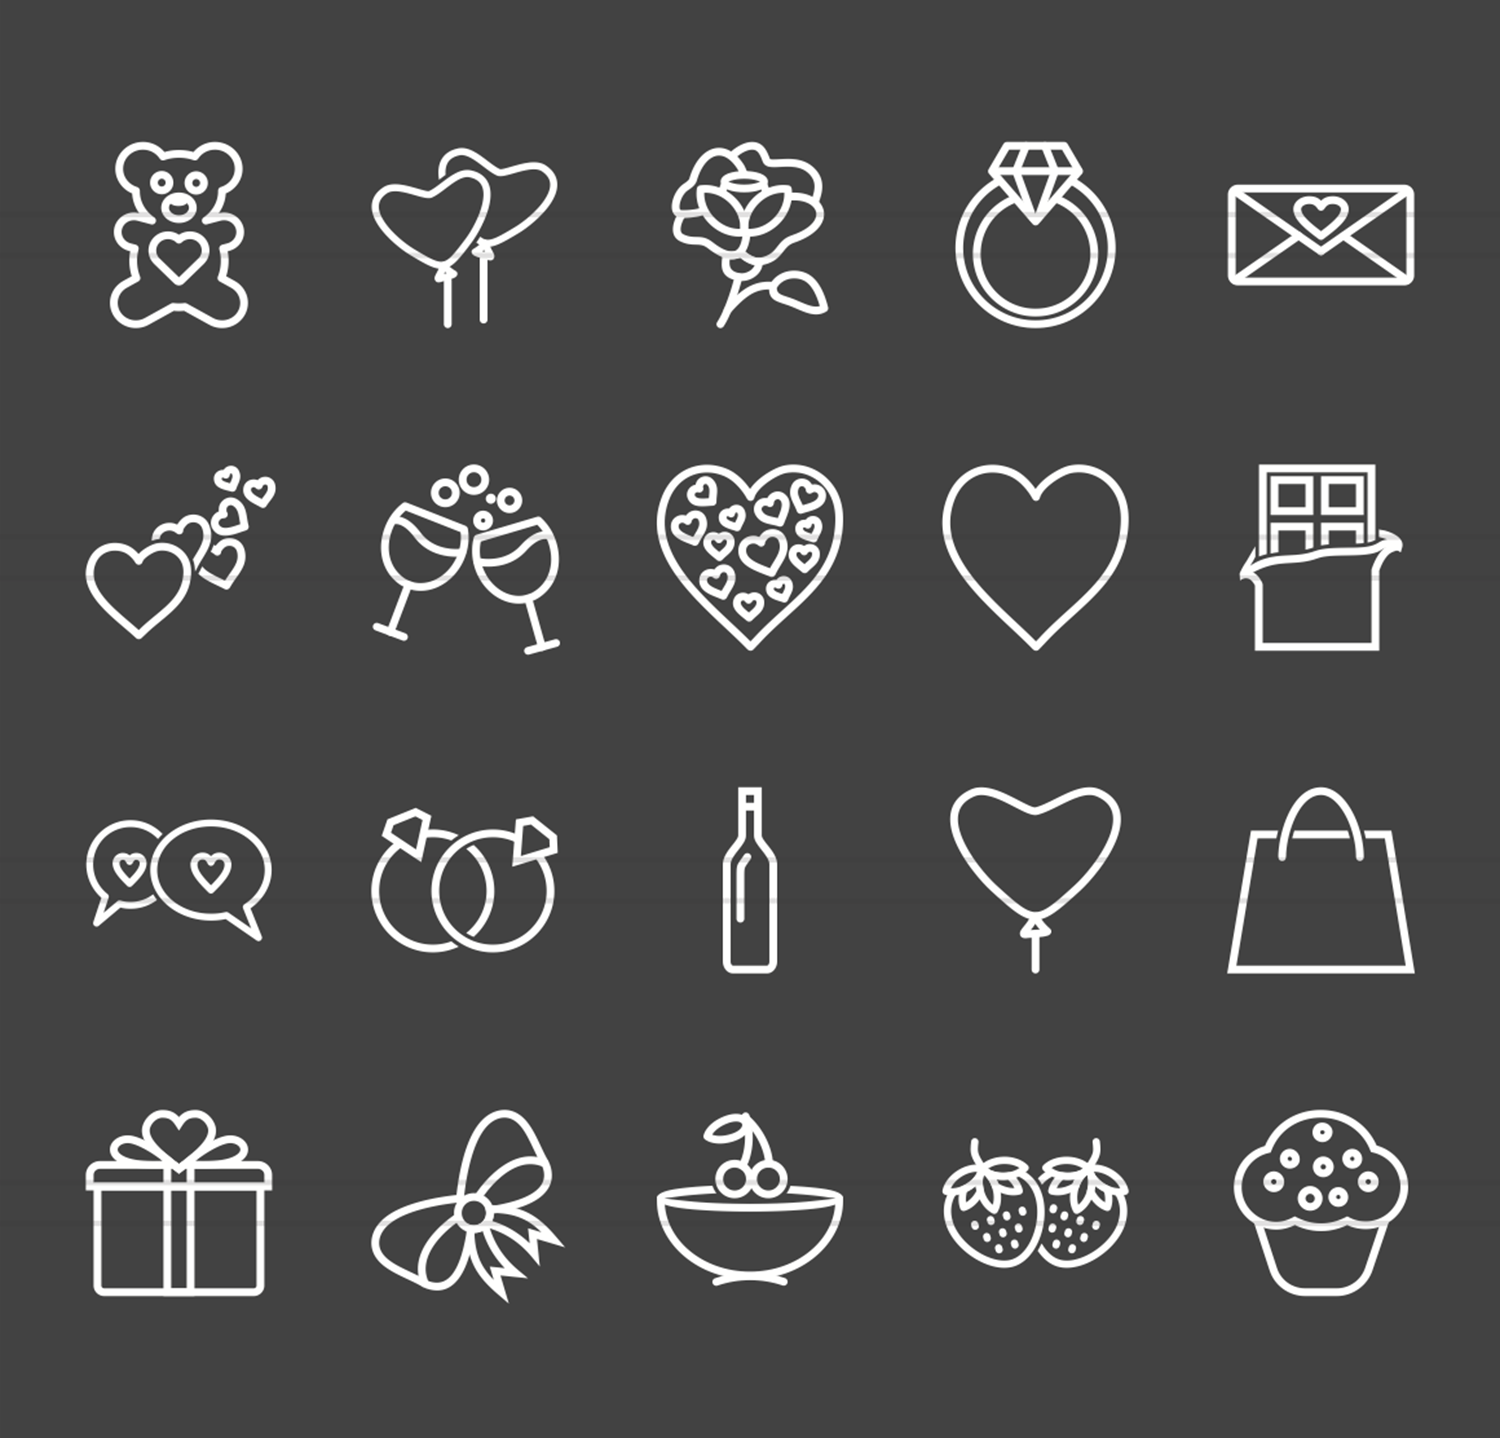 20 Valentine Line Inverted Icons example image 2